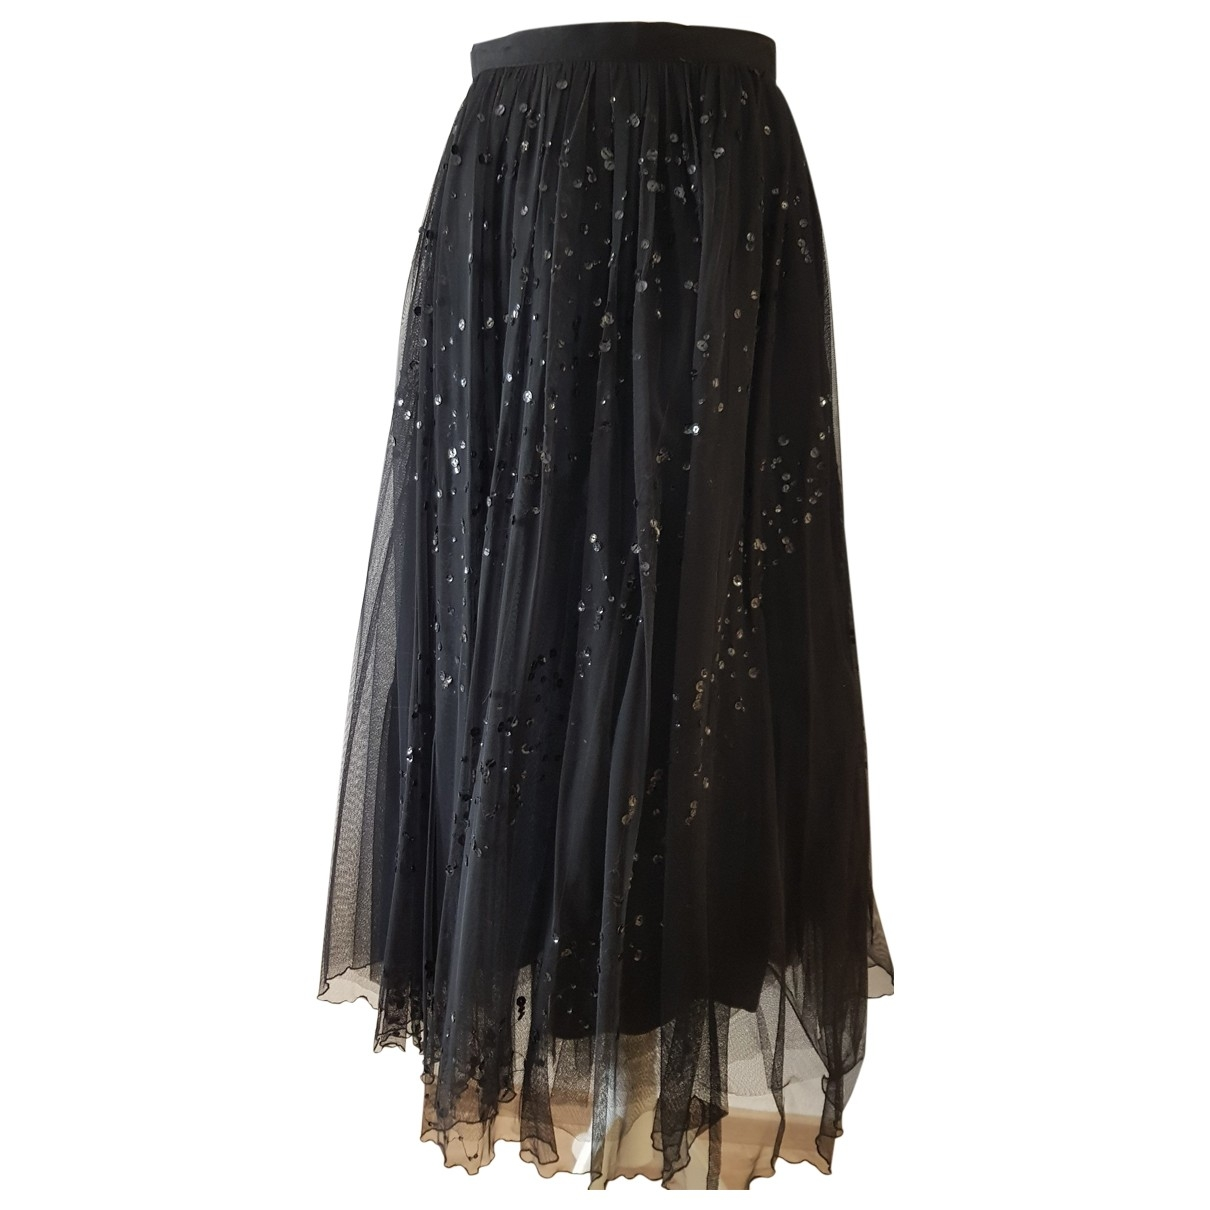 Elegance Paris \N Black skirt for Women 40 FR